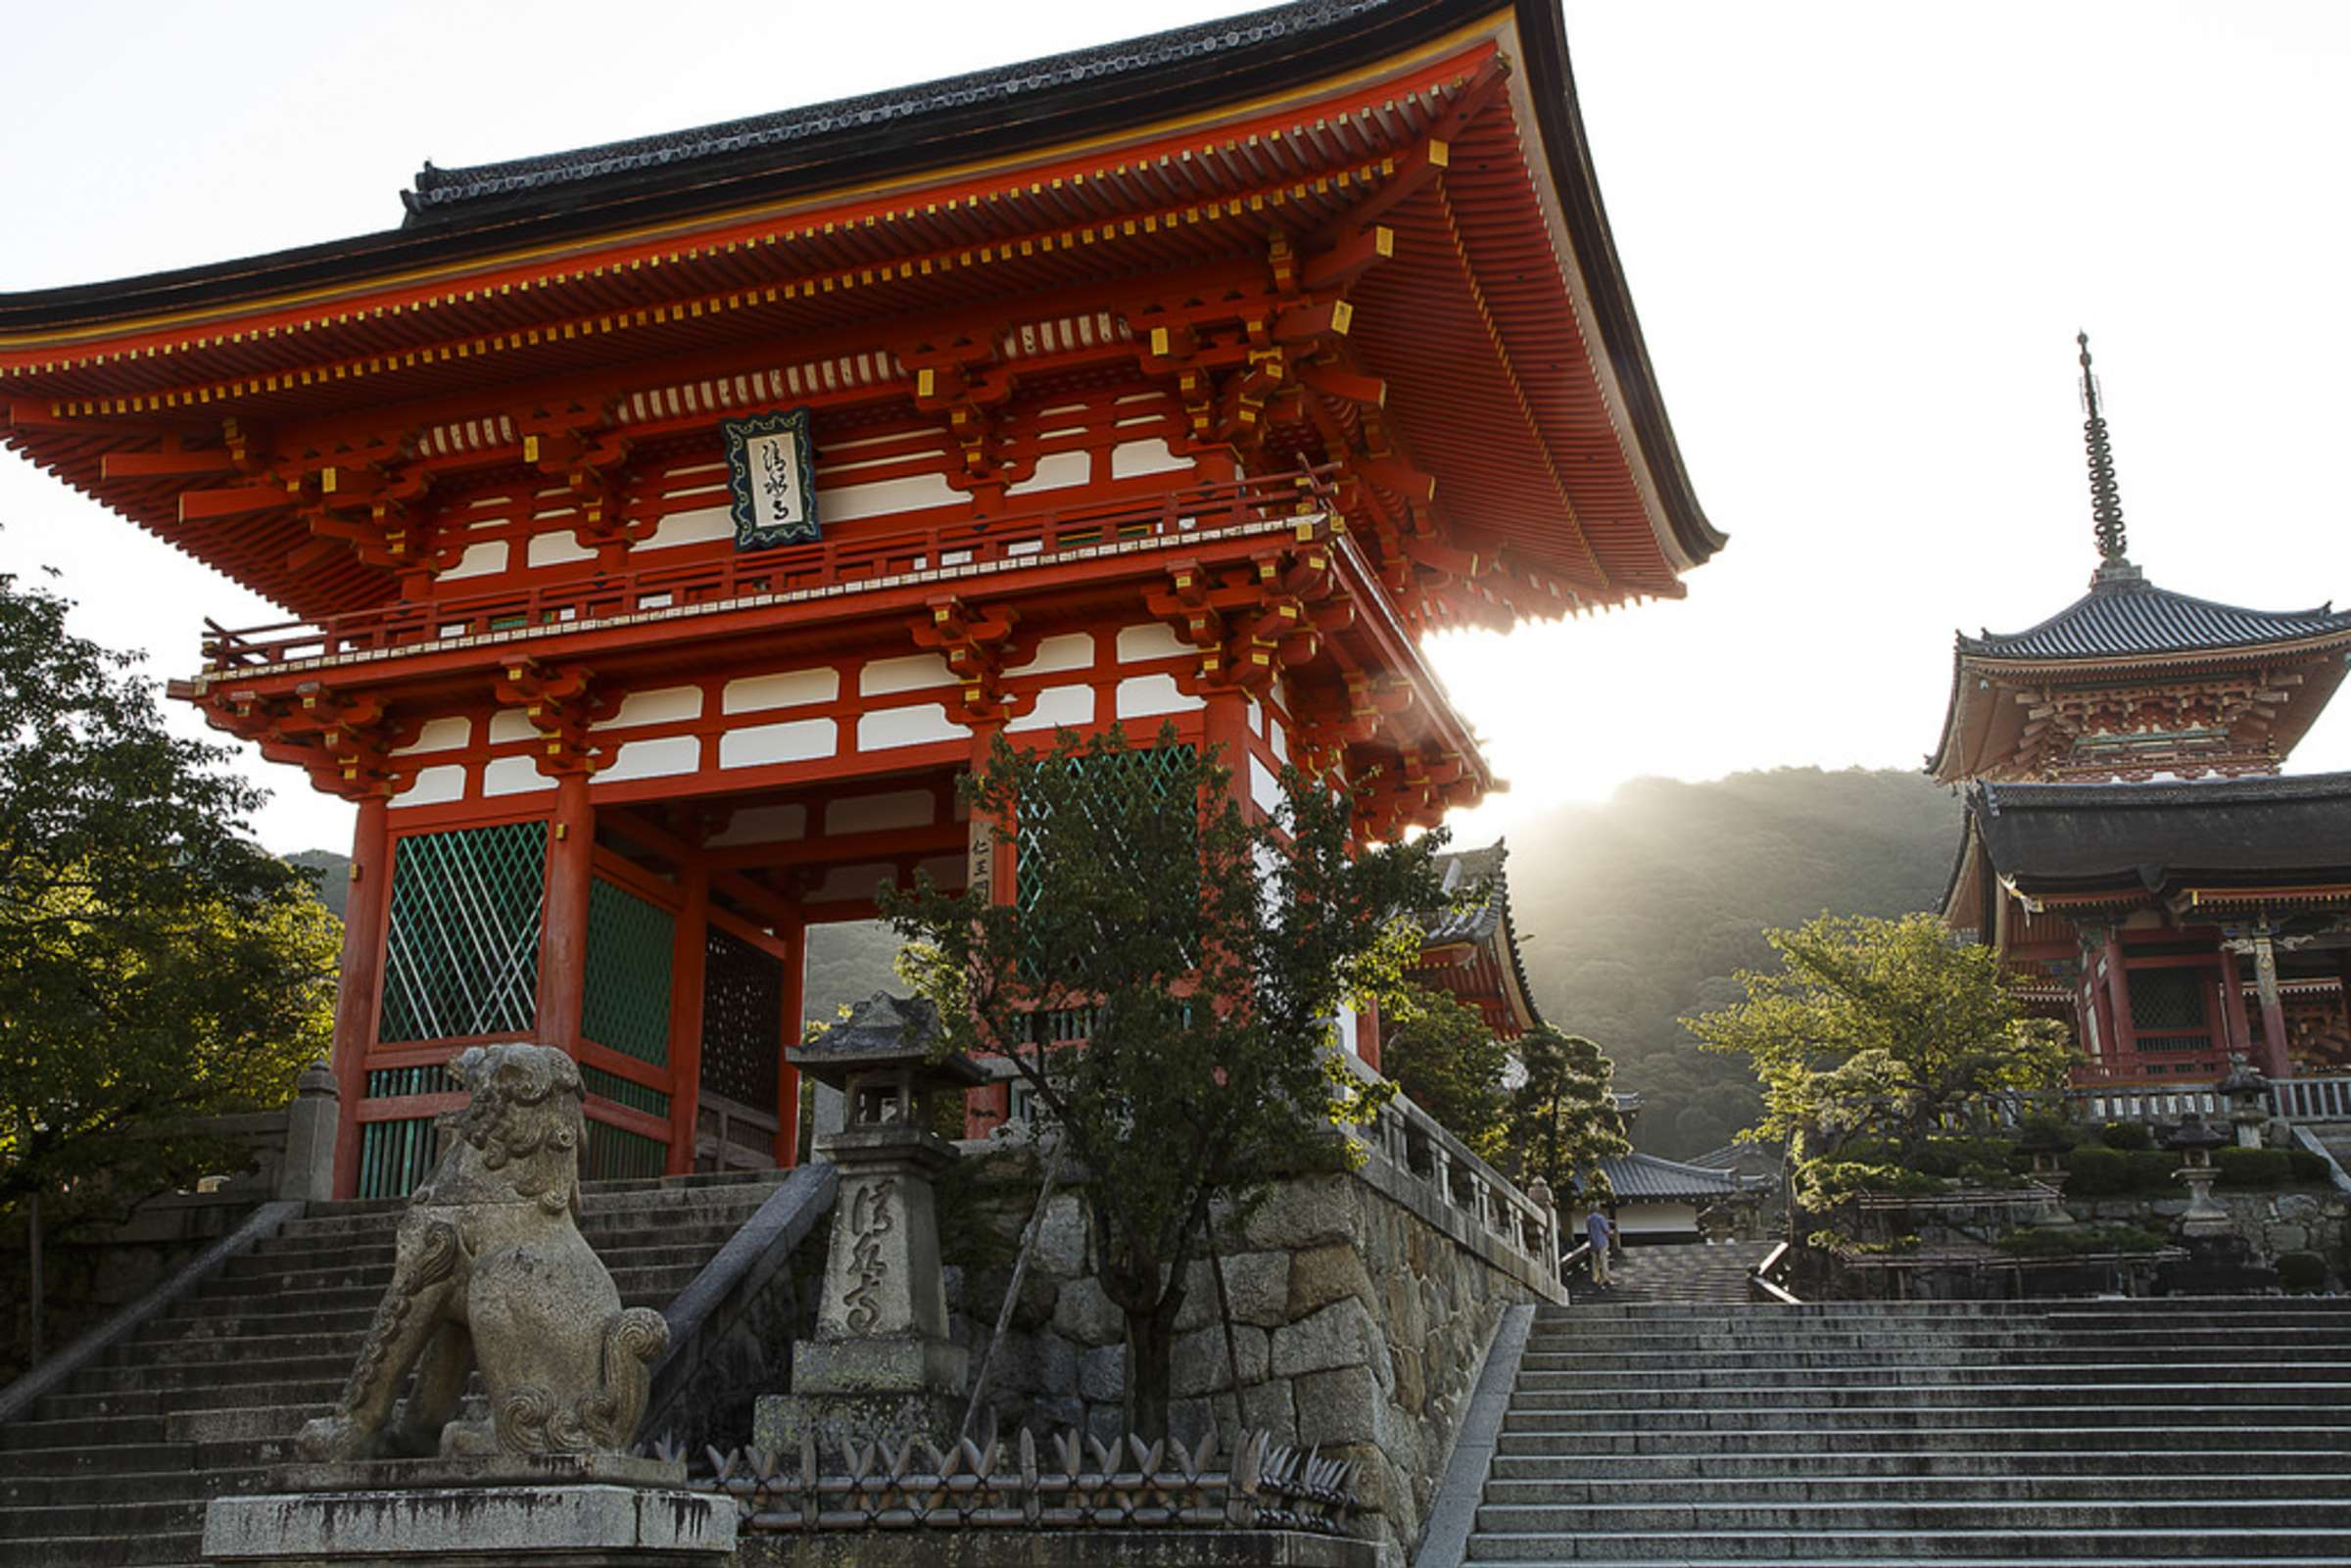 Kyoto Temple Tour - Shinto & Buddhism with Historian - Context